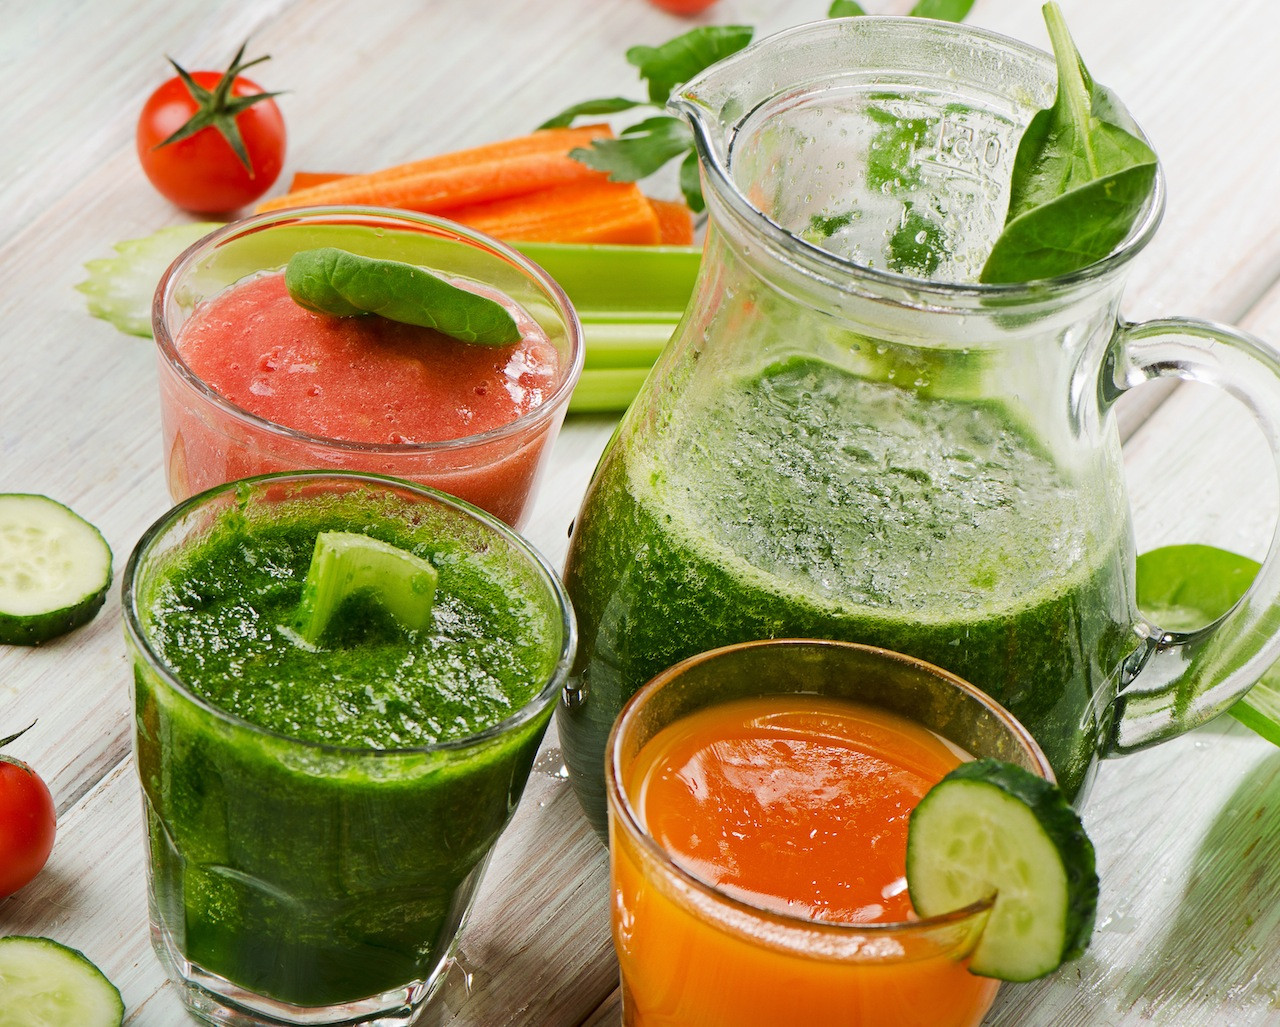 Diet Smoothie Recipes  WatchFit Diet smoothie recipes that will keep you full